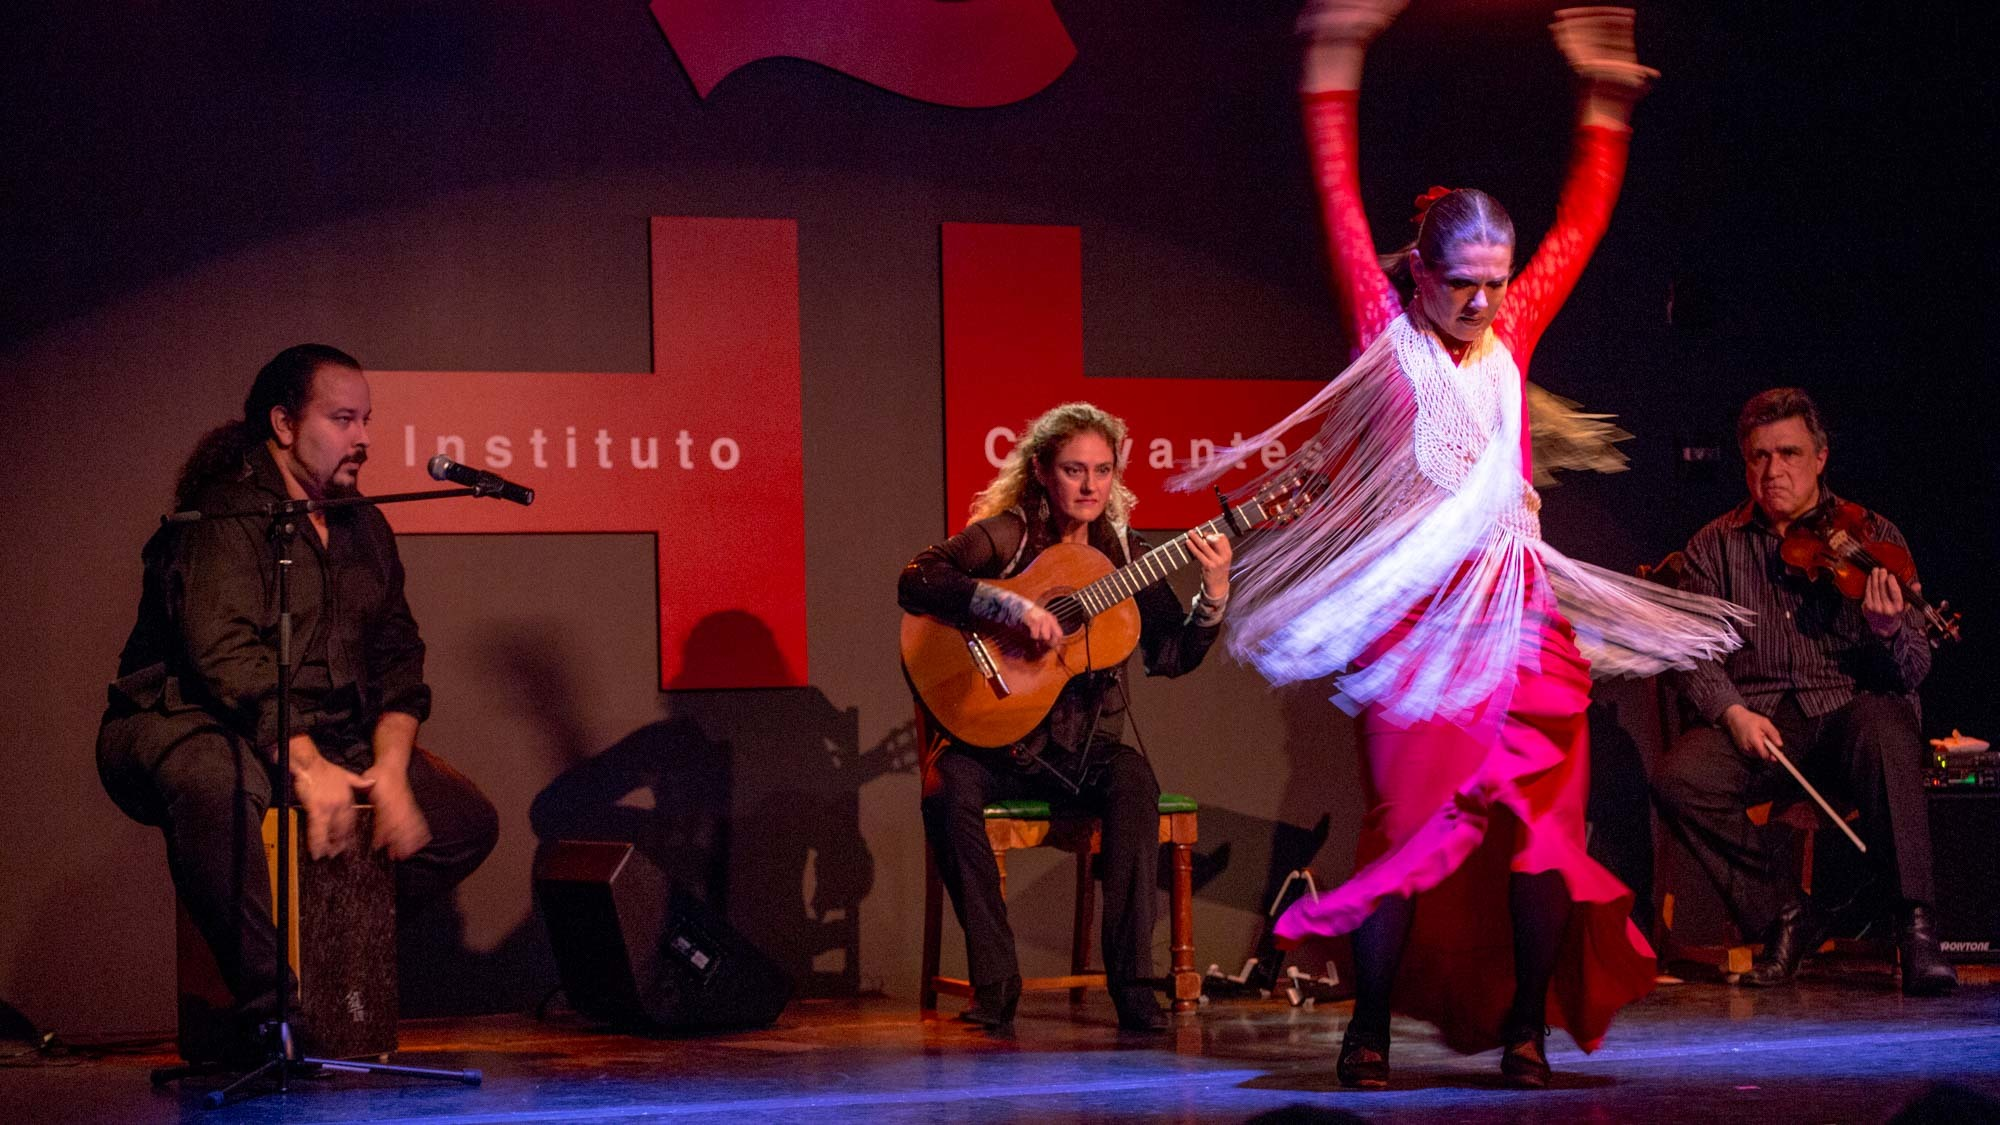 Greetings from Flamenco Dancer Wendy Clinard lead image